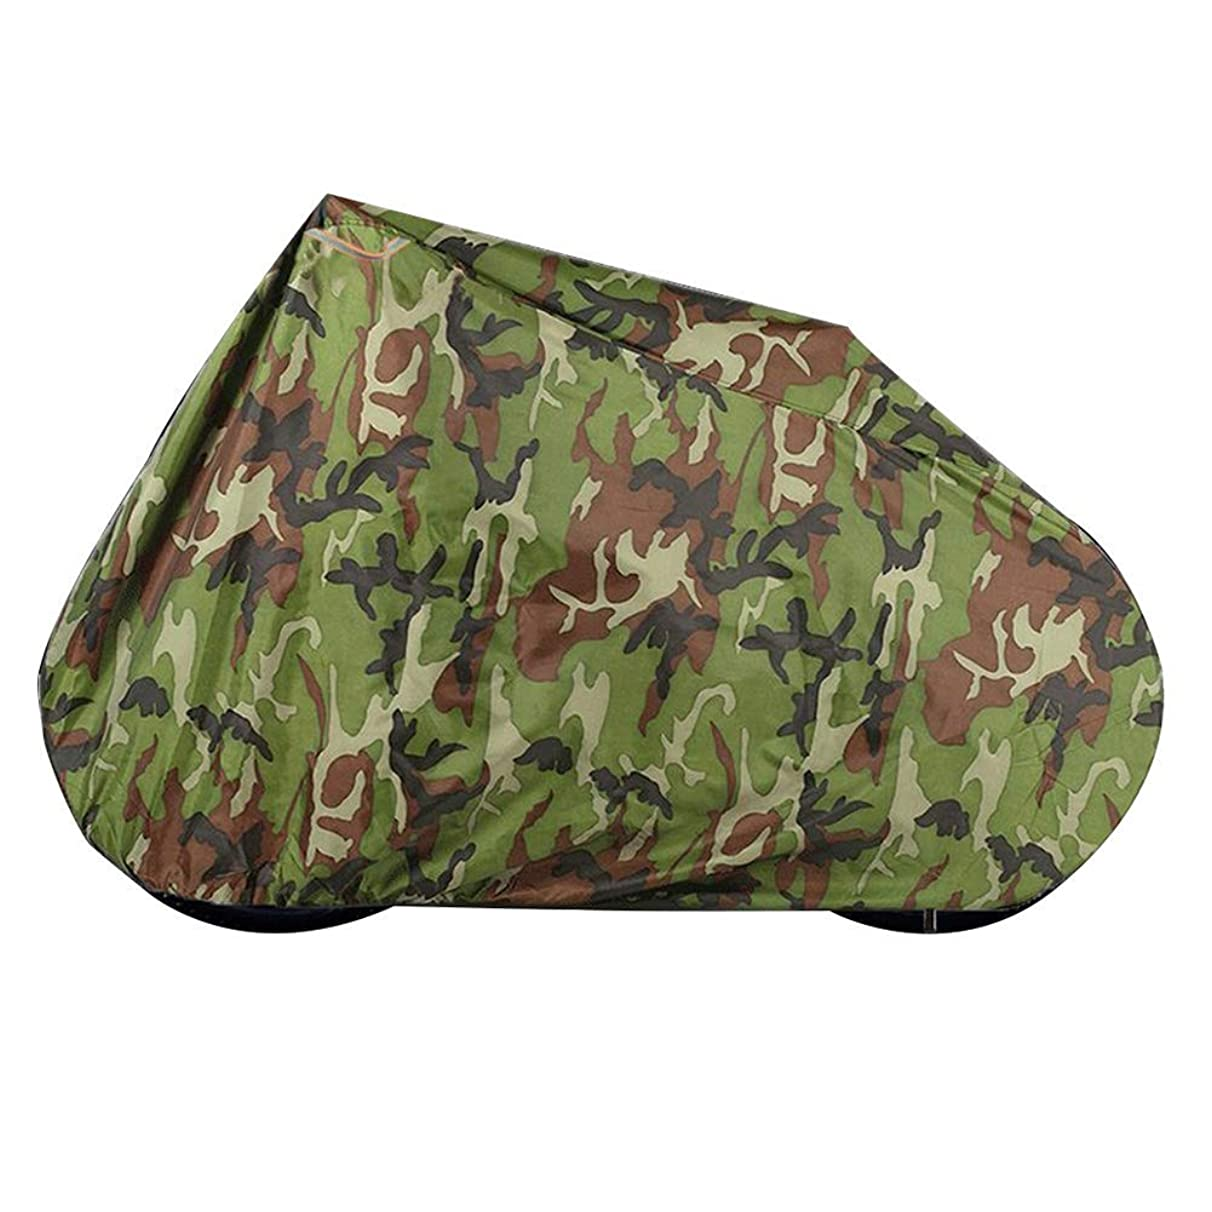 Waterproof Bike Cover Electric Cars Shade Net/Sunscreen Tarpaulin, Sunscreen Dust-Proof, Storage Bag Design, Multi-Size Optional Camouflage Color, WenMing Yue, XL